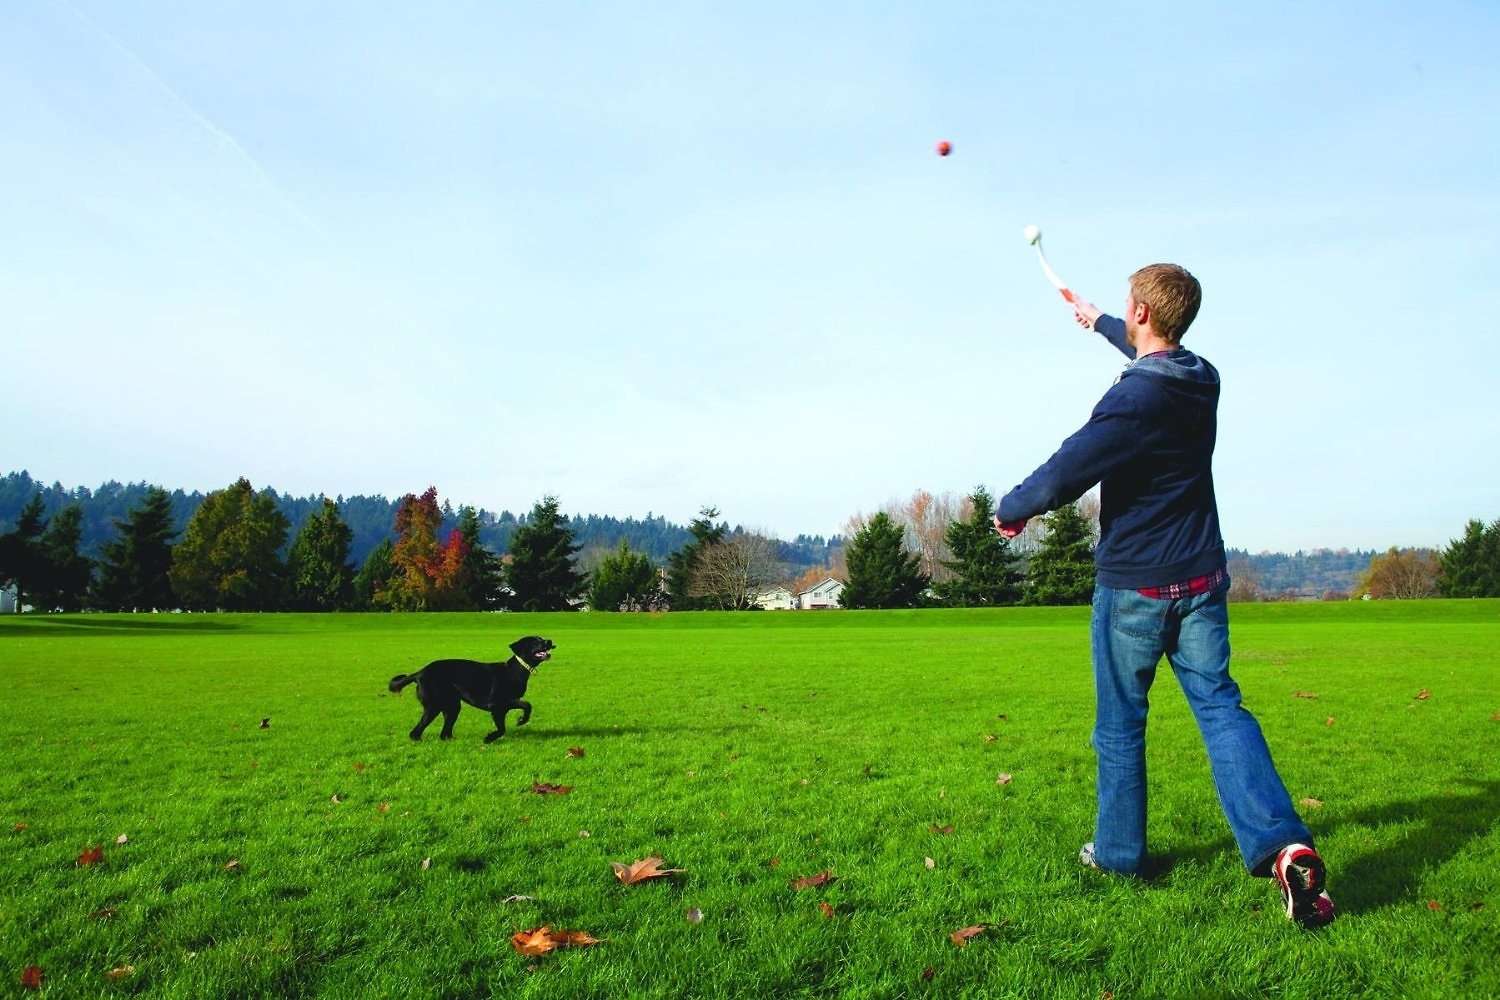 A person launching their dog's ball considerably farther than a traditional throw with the help of the arm-length wand